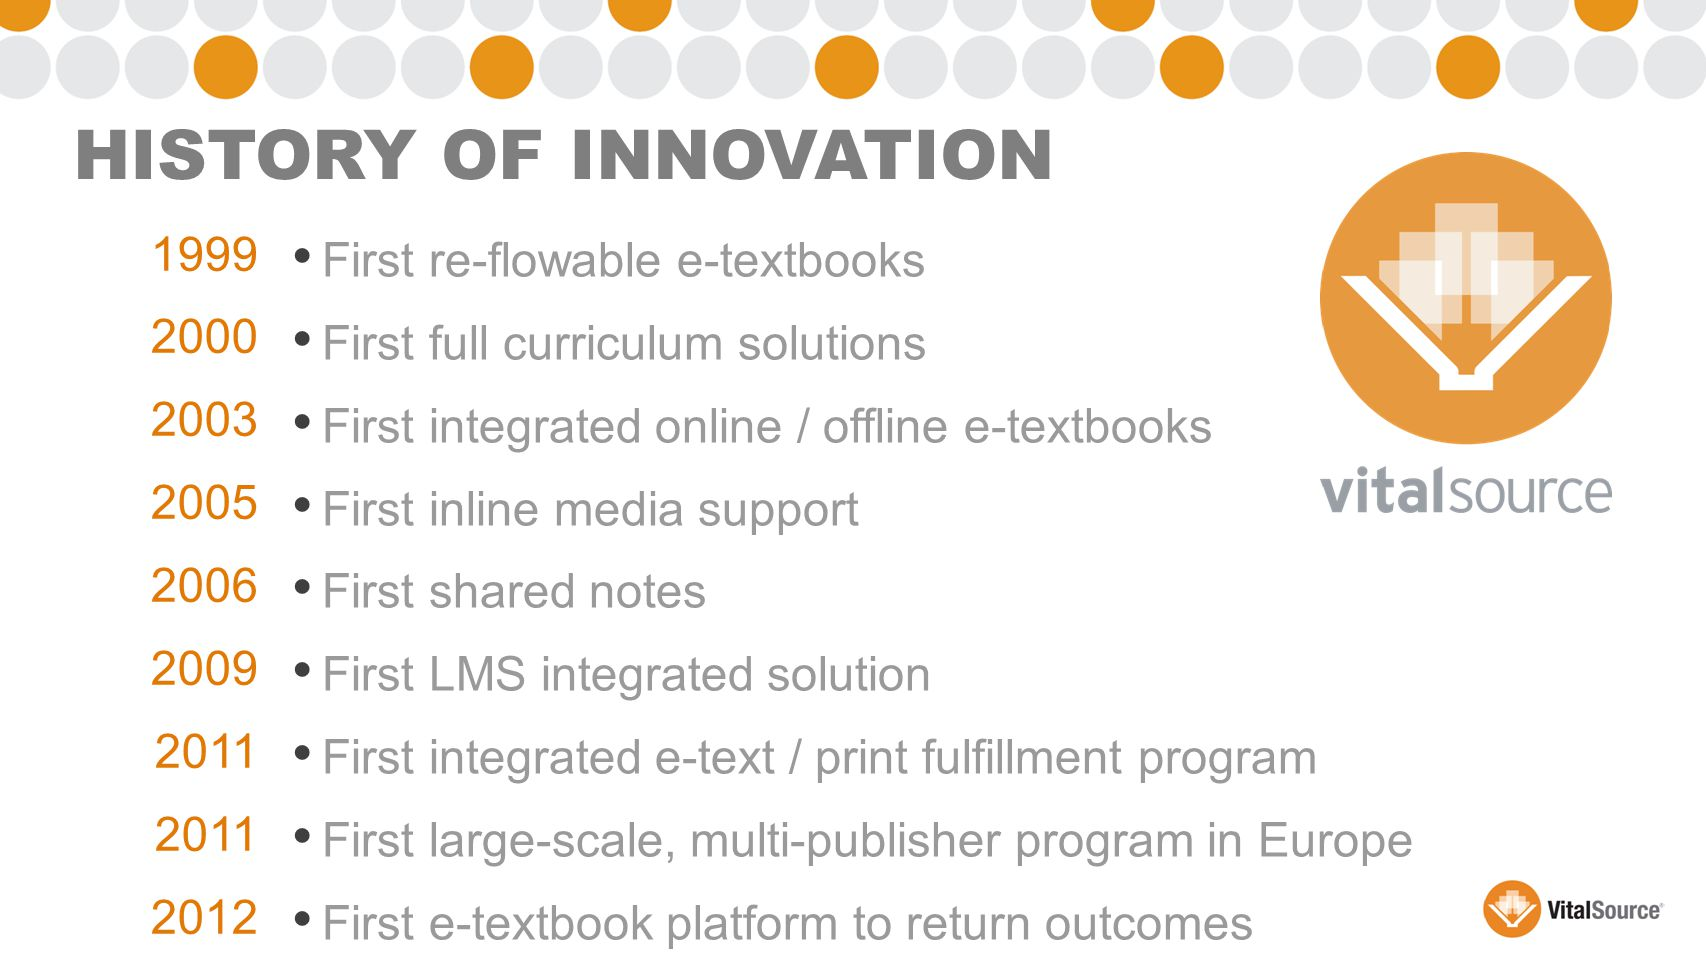 First re-flowable e-textbooks First full curriculum solutions First integrated online / offline e-textbooks First inline media support First shared notes First LMS integrated solution First integrated e-text / print fulfillment program First large-scale, multi-publisher program in Europe First e-textbook platform to return outcomes 1999 2000 2003 2005 2006 2009 2011 2012 HISTORY OF INNOVATION